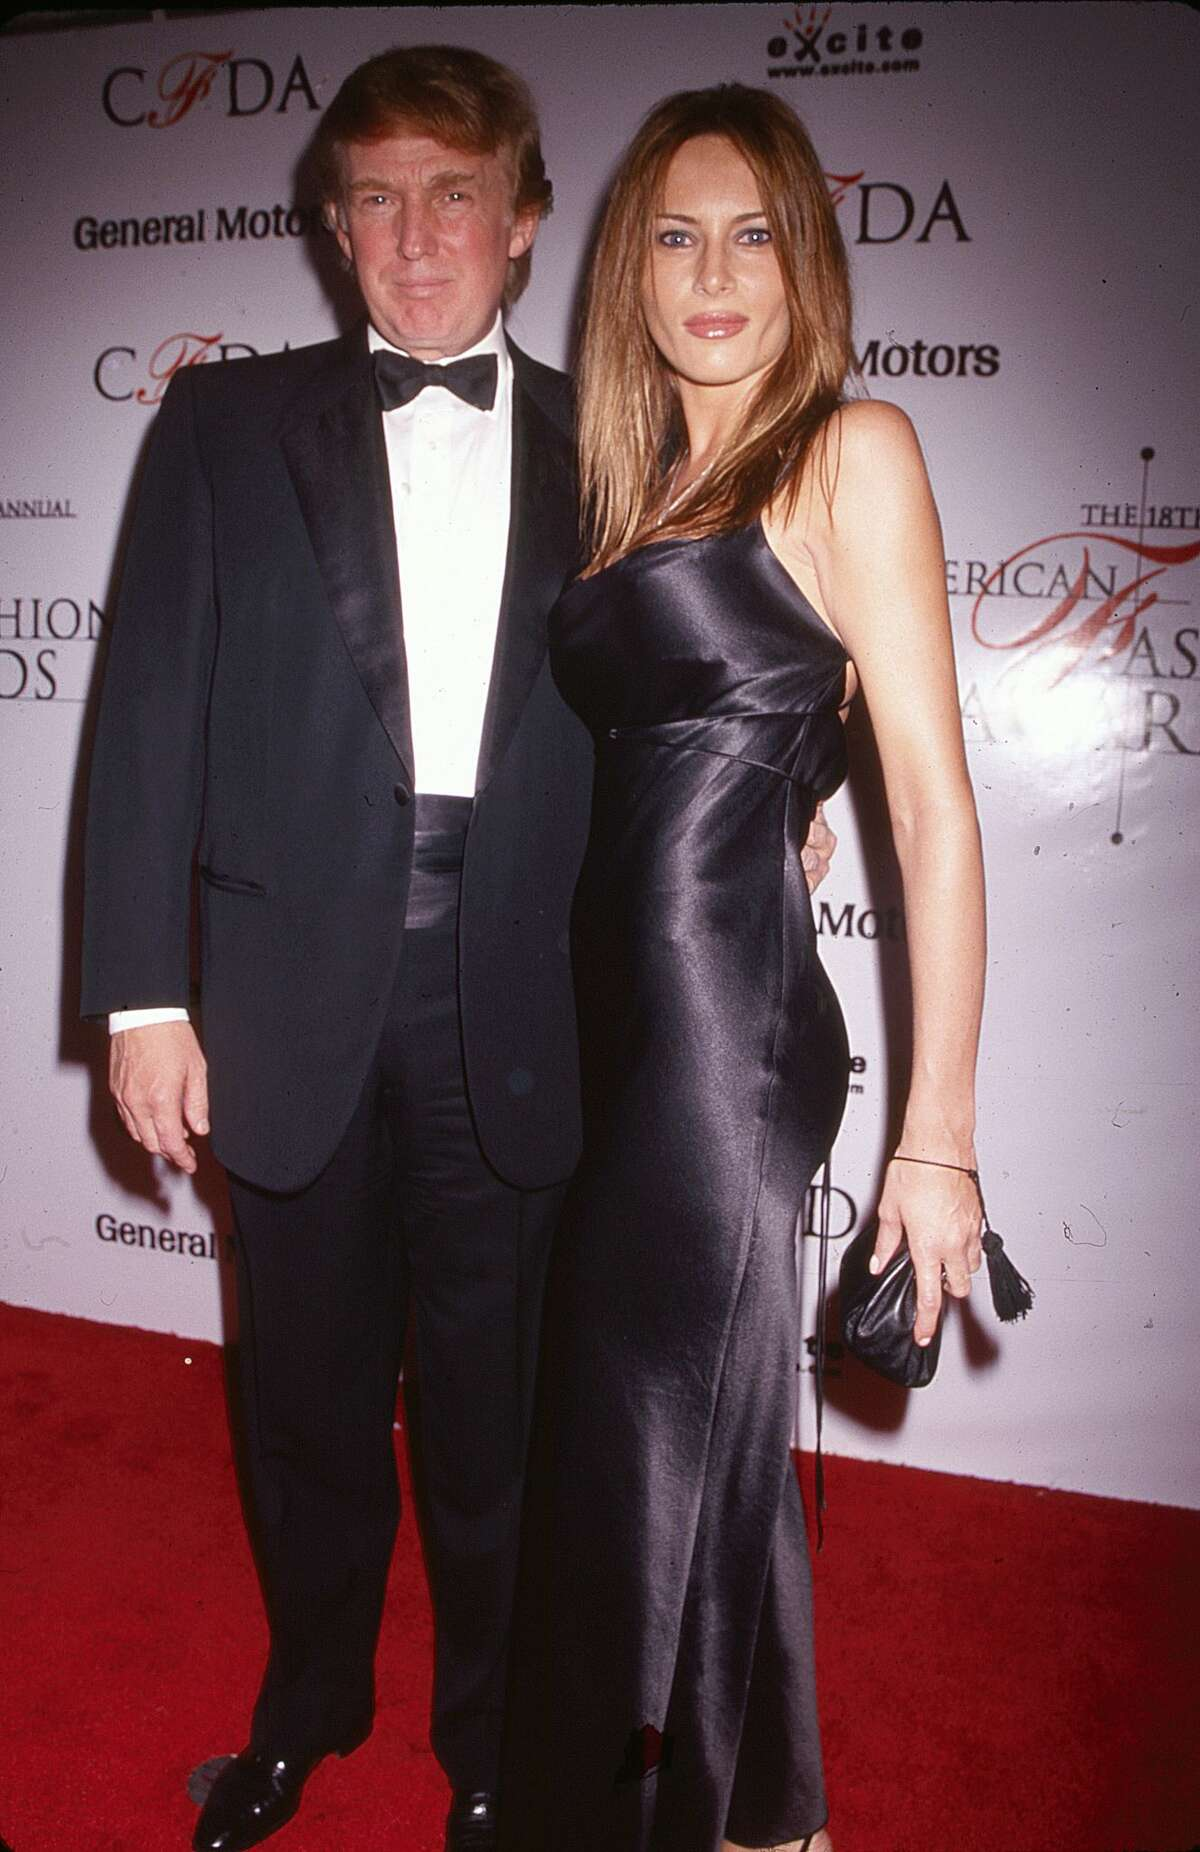 Donald and Melania Trump through the years Donald Trump and Melania Knauss (born Melanija Knavs) as they pose together on the red carpet at the 18th annual Council of Fashion Designers of America (CFDA) awards, New York, New York, June 2, 1999.